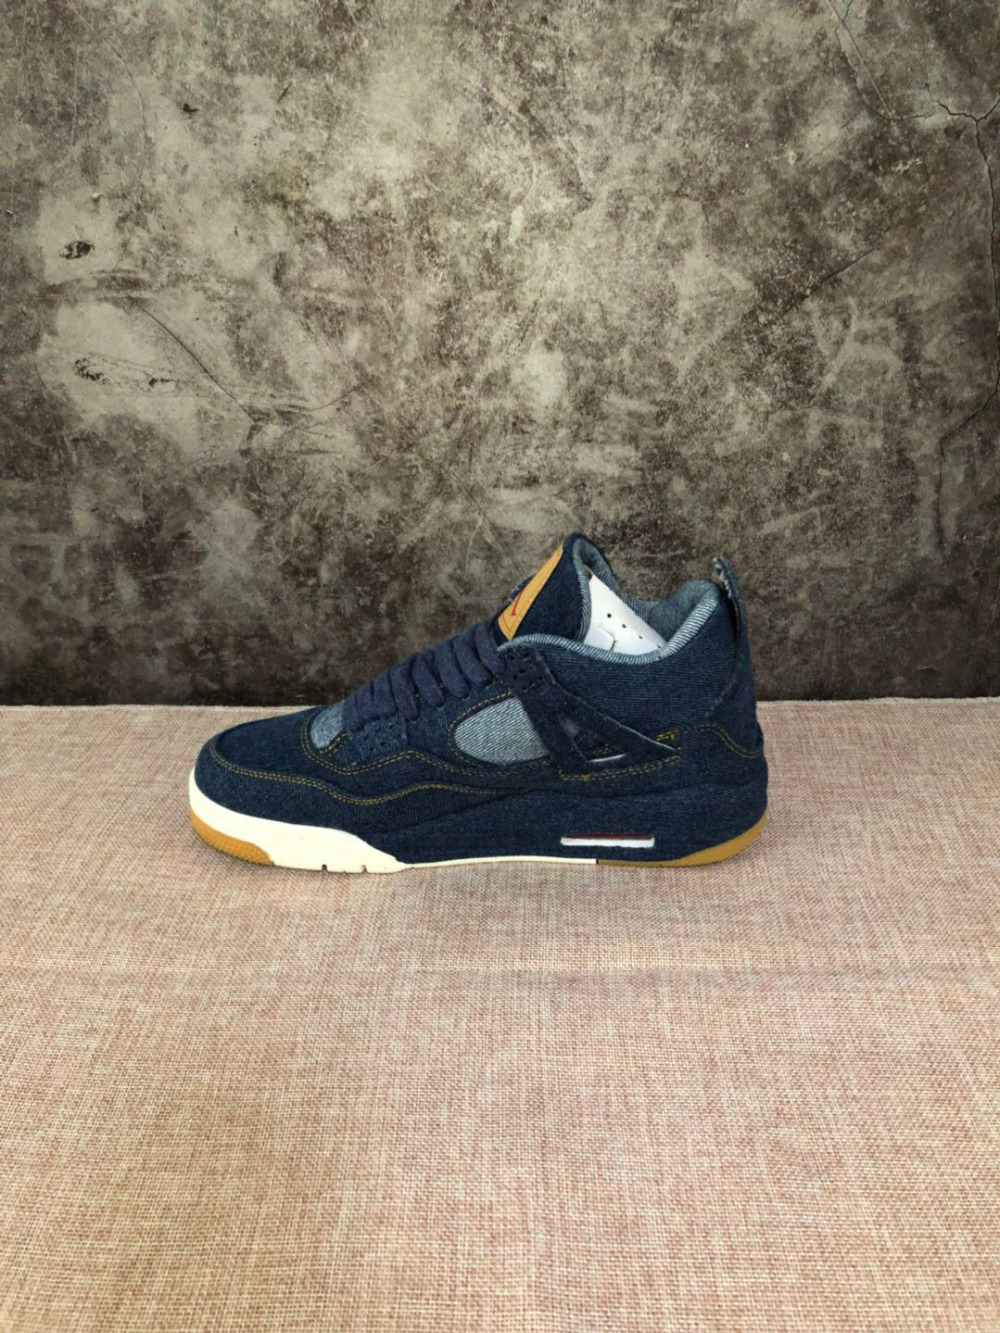 2a466433d8e Jordan Air Retro 4 Men and women Basketball Shoes x LES blue Breathable Men's  Basketball Shoes Sports Sneakers Outdoor 36 46-in Basketball Shoes from  Sports ...